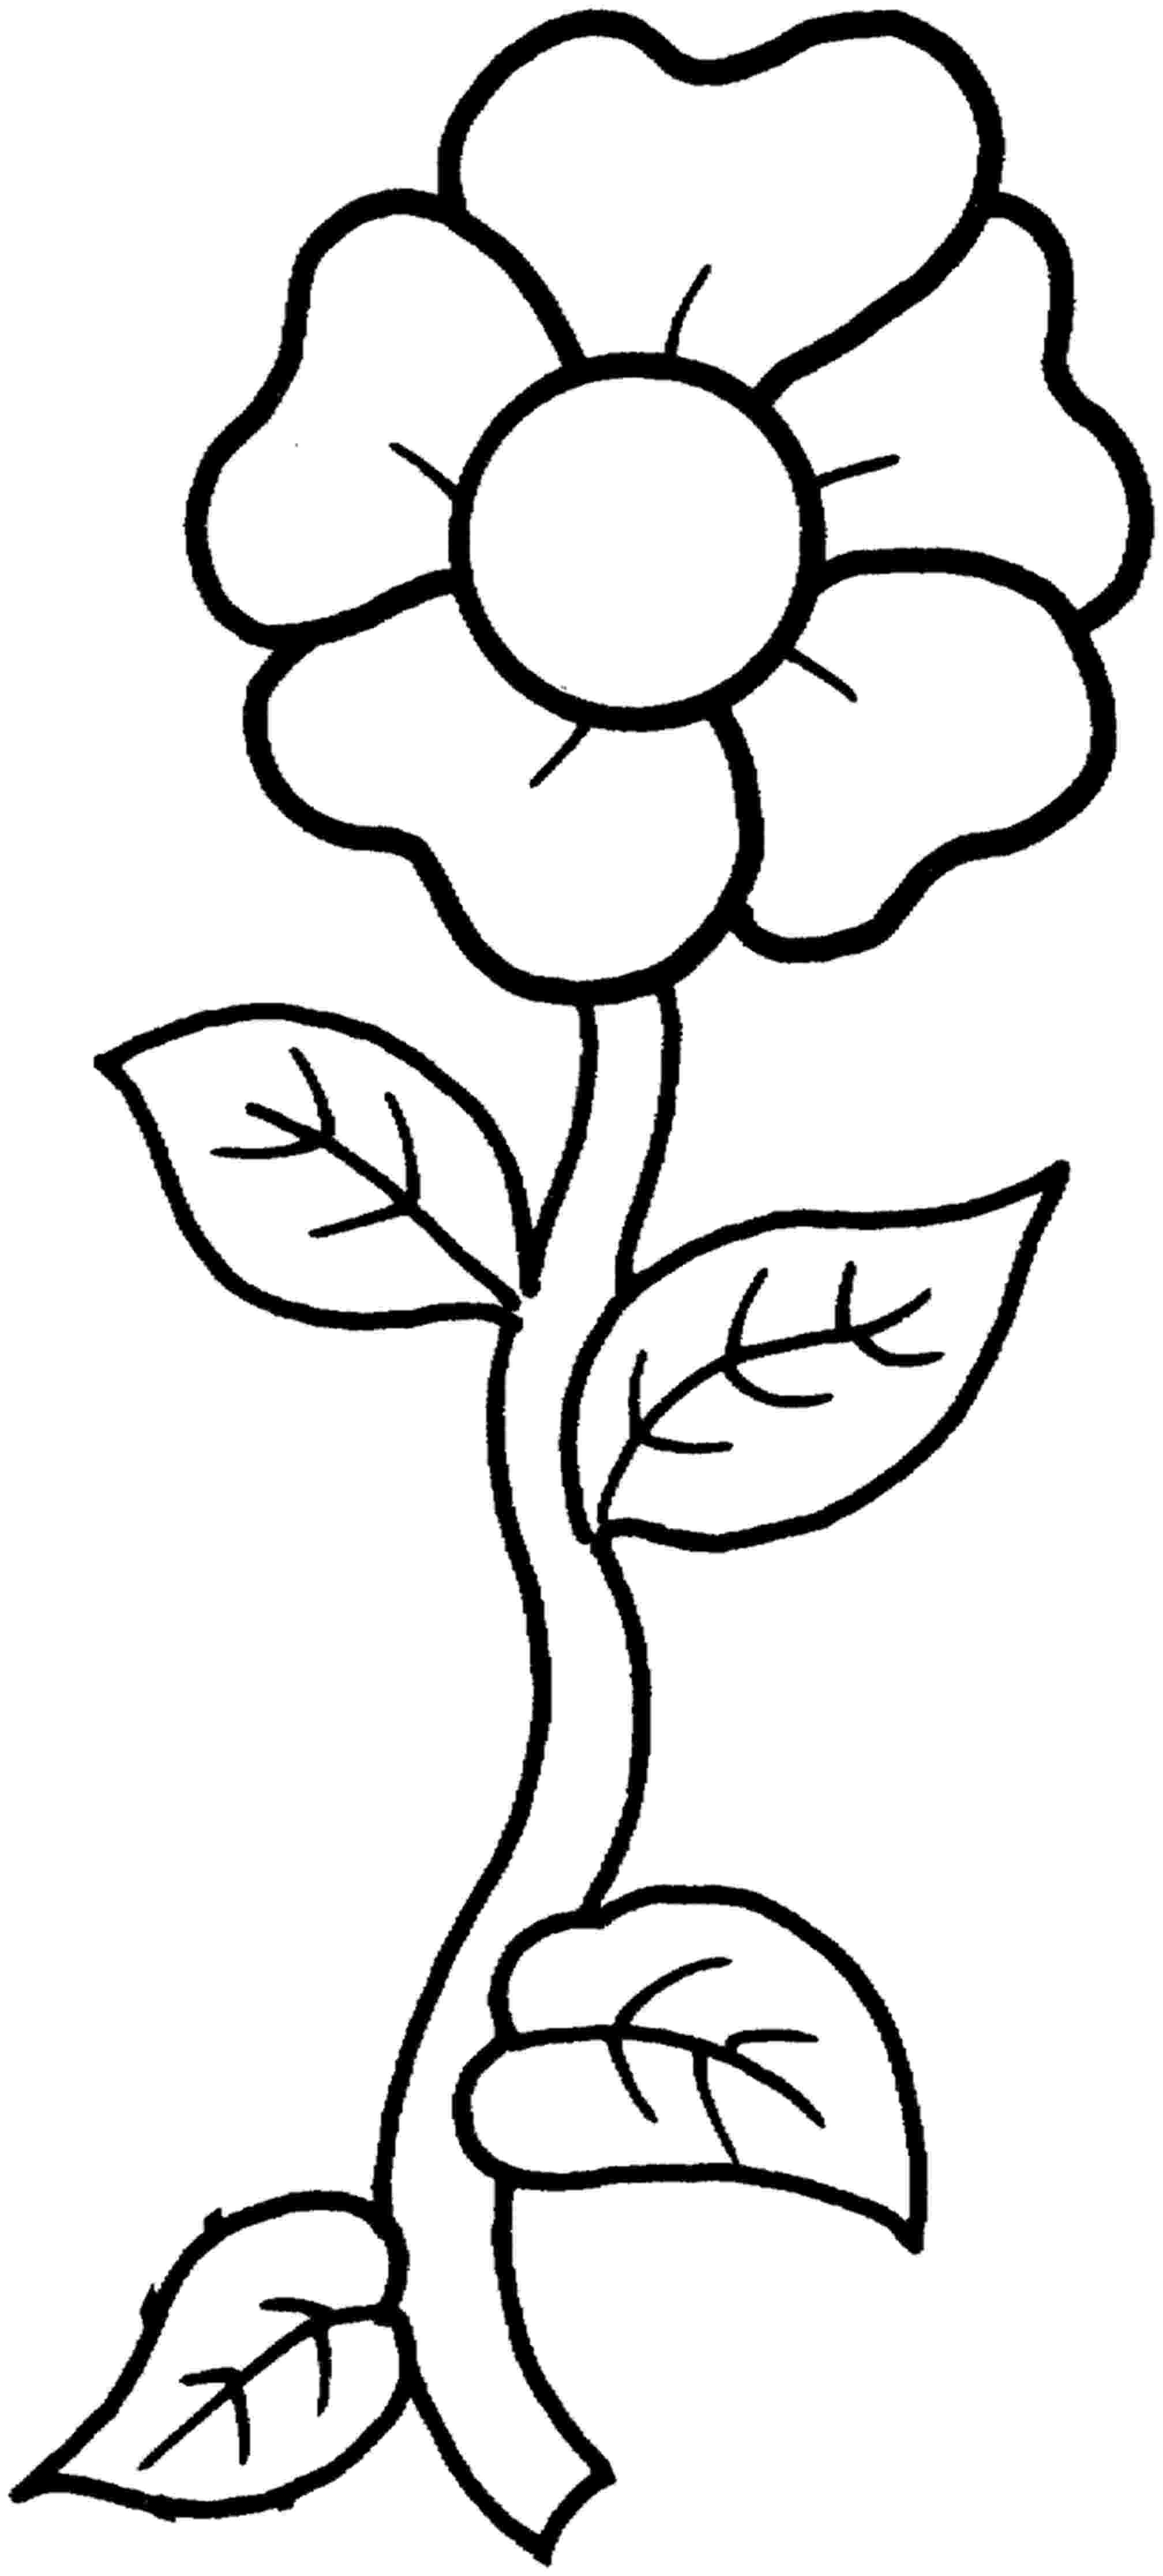 flower templates for coloring lizzydoodles september 2012 templates for flower coloring